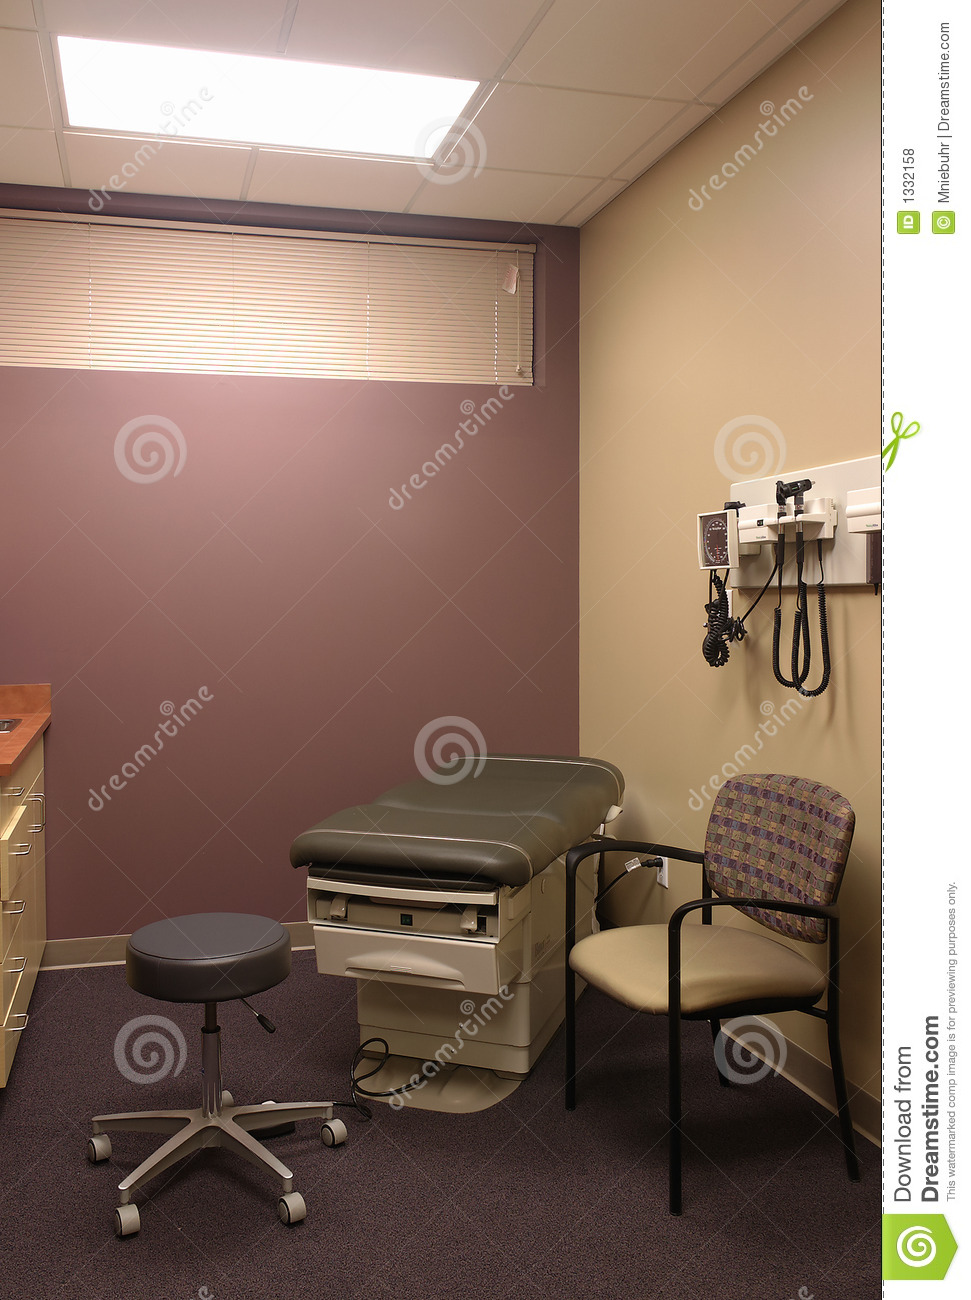 Generic clinic medical exam room and exam table